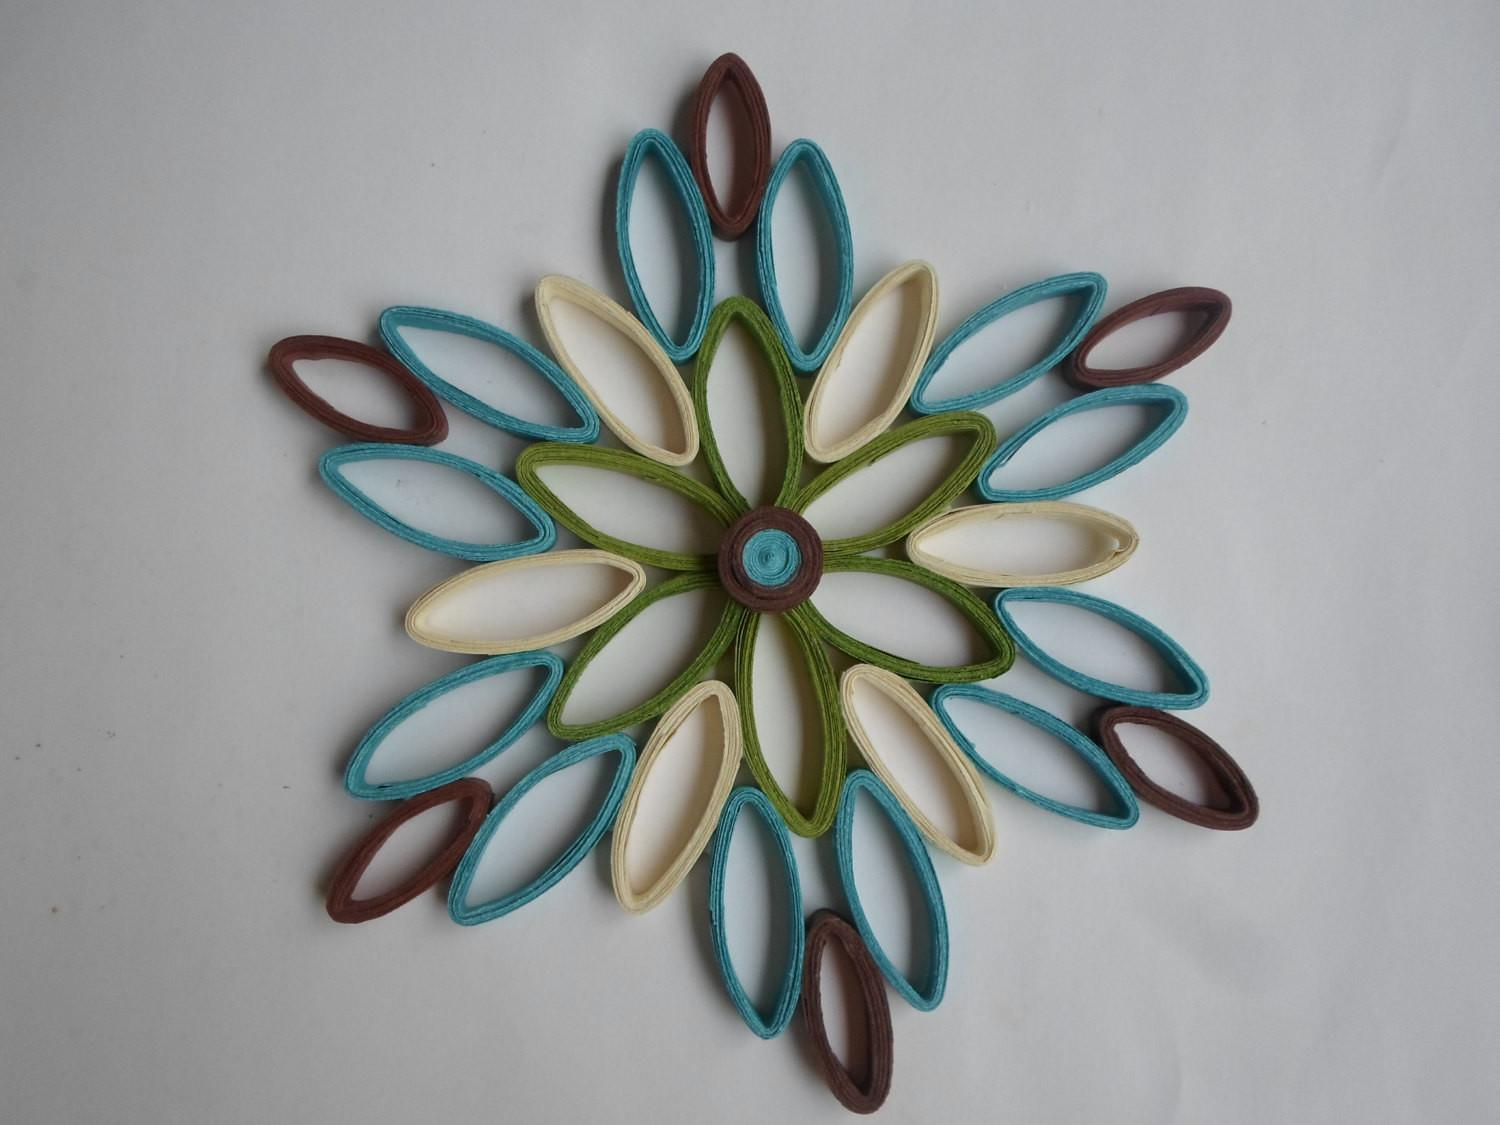 Turquoise Wall Hanging Modern Decor Paper Art